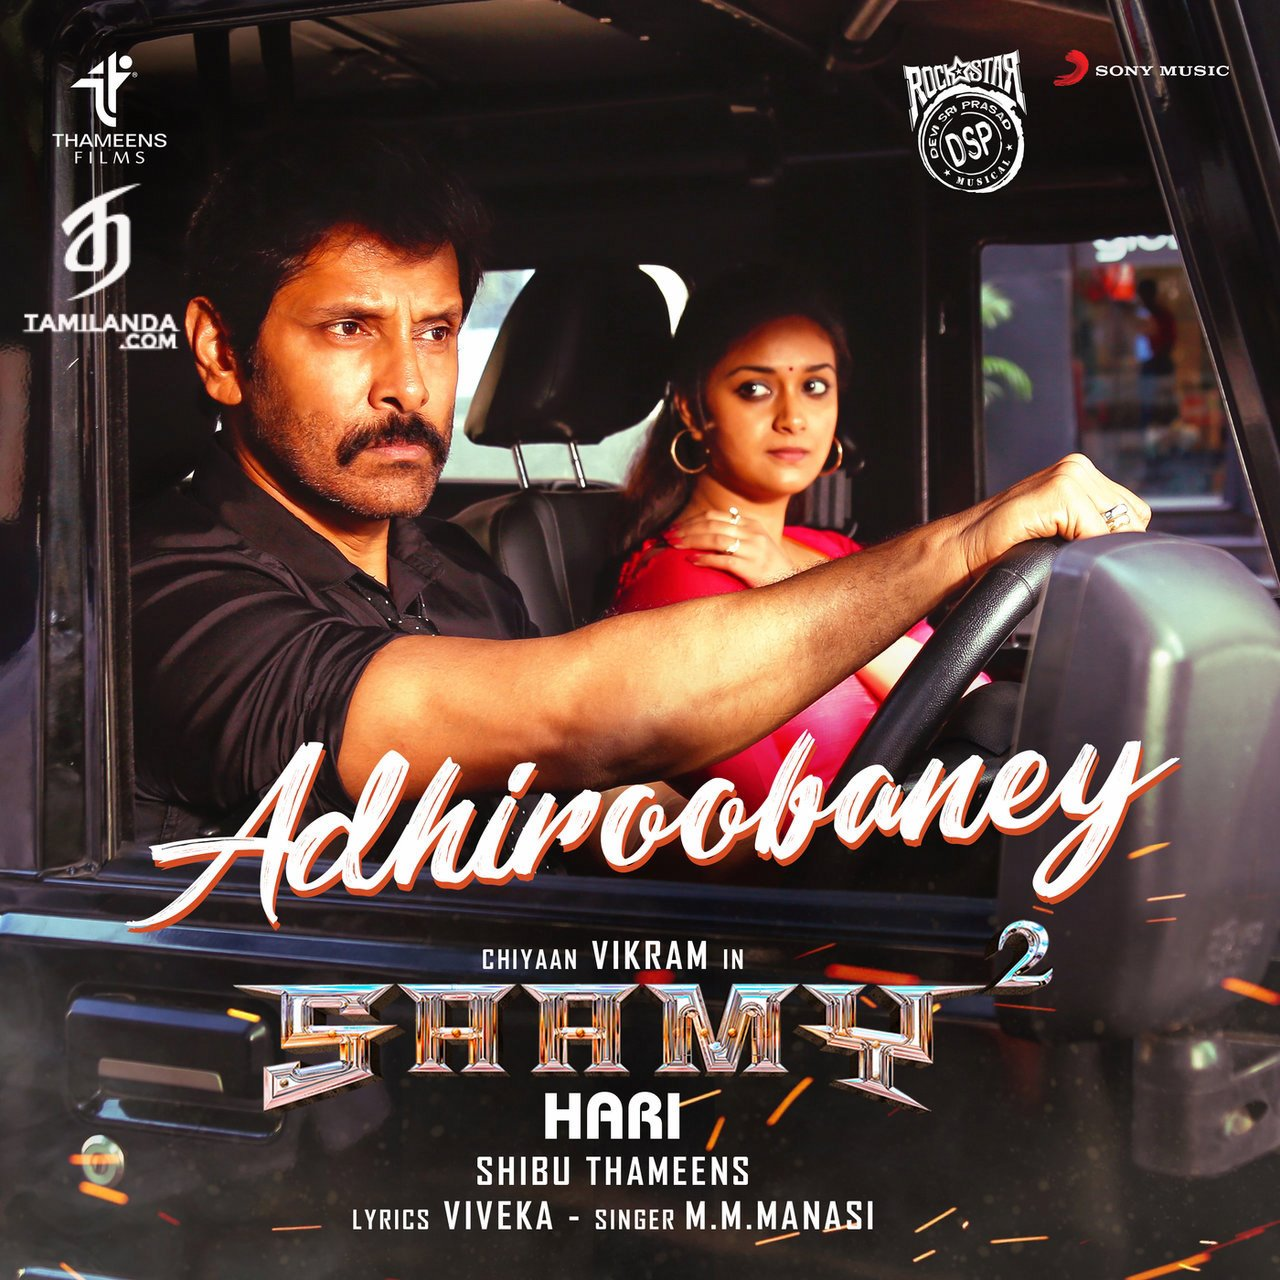 Adhiroobaney (From Saamy Square) FLAC / WAV Single Song